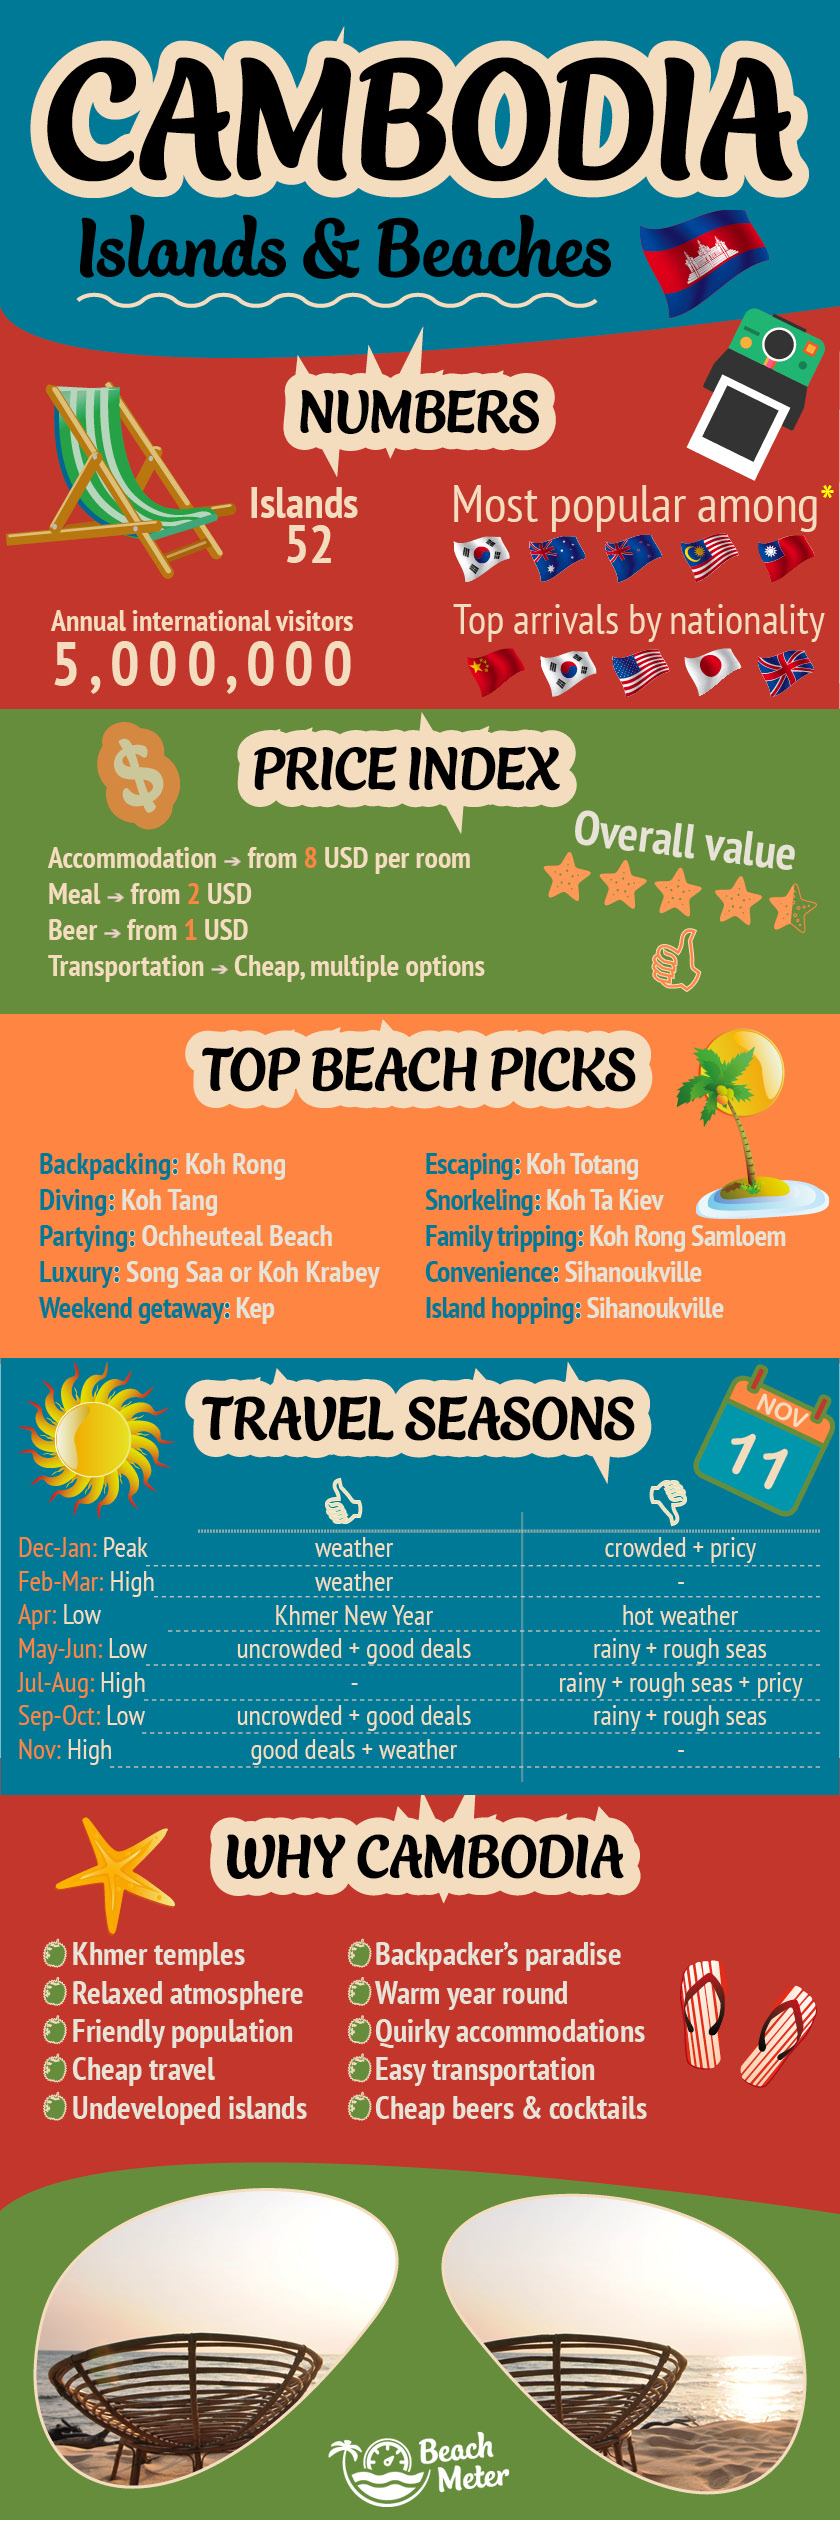 Cambodia infographic. Infographic of Cambodia's Islands and beaches including tourism information, price index, best beaches, travel seasons, and Unique Selling Points for Cambodia. Made by Beachmeter.com.